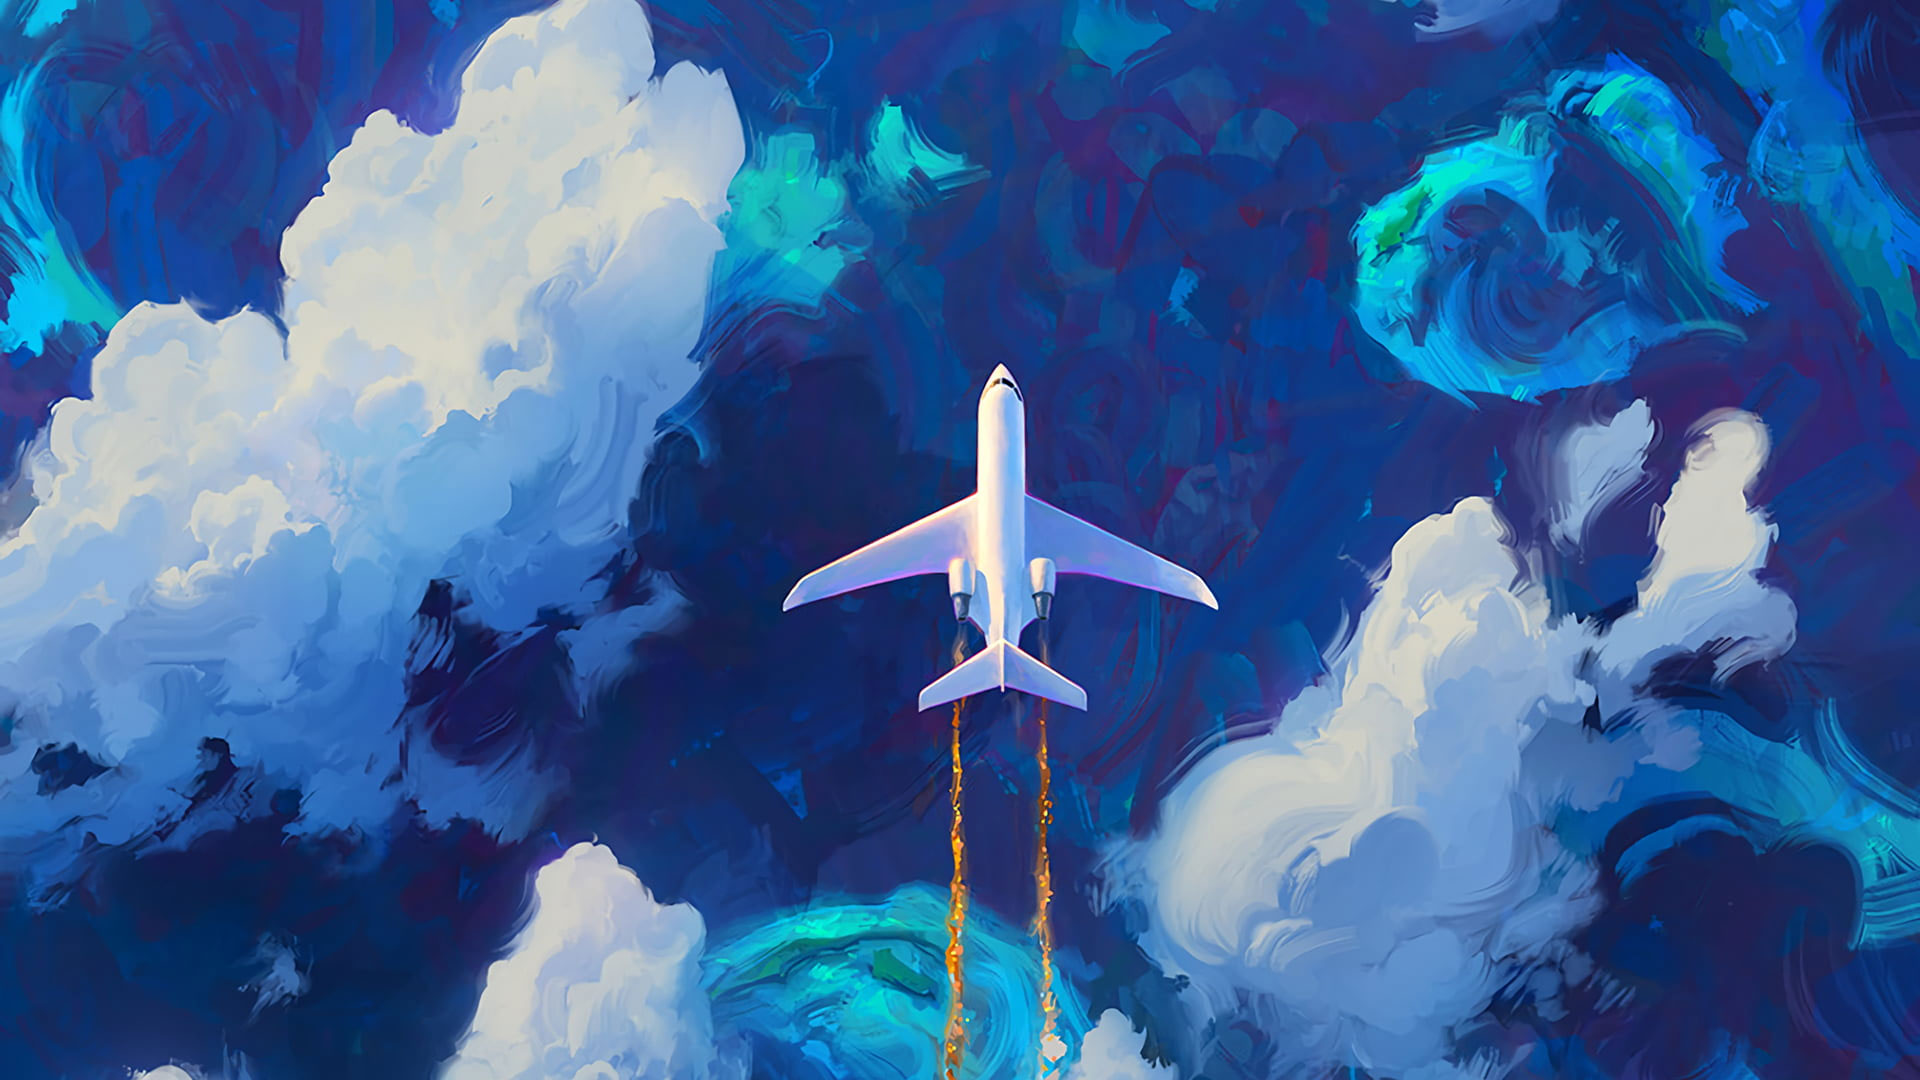 Art Wallpaper